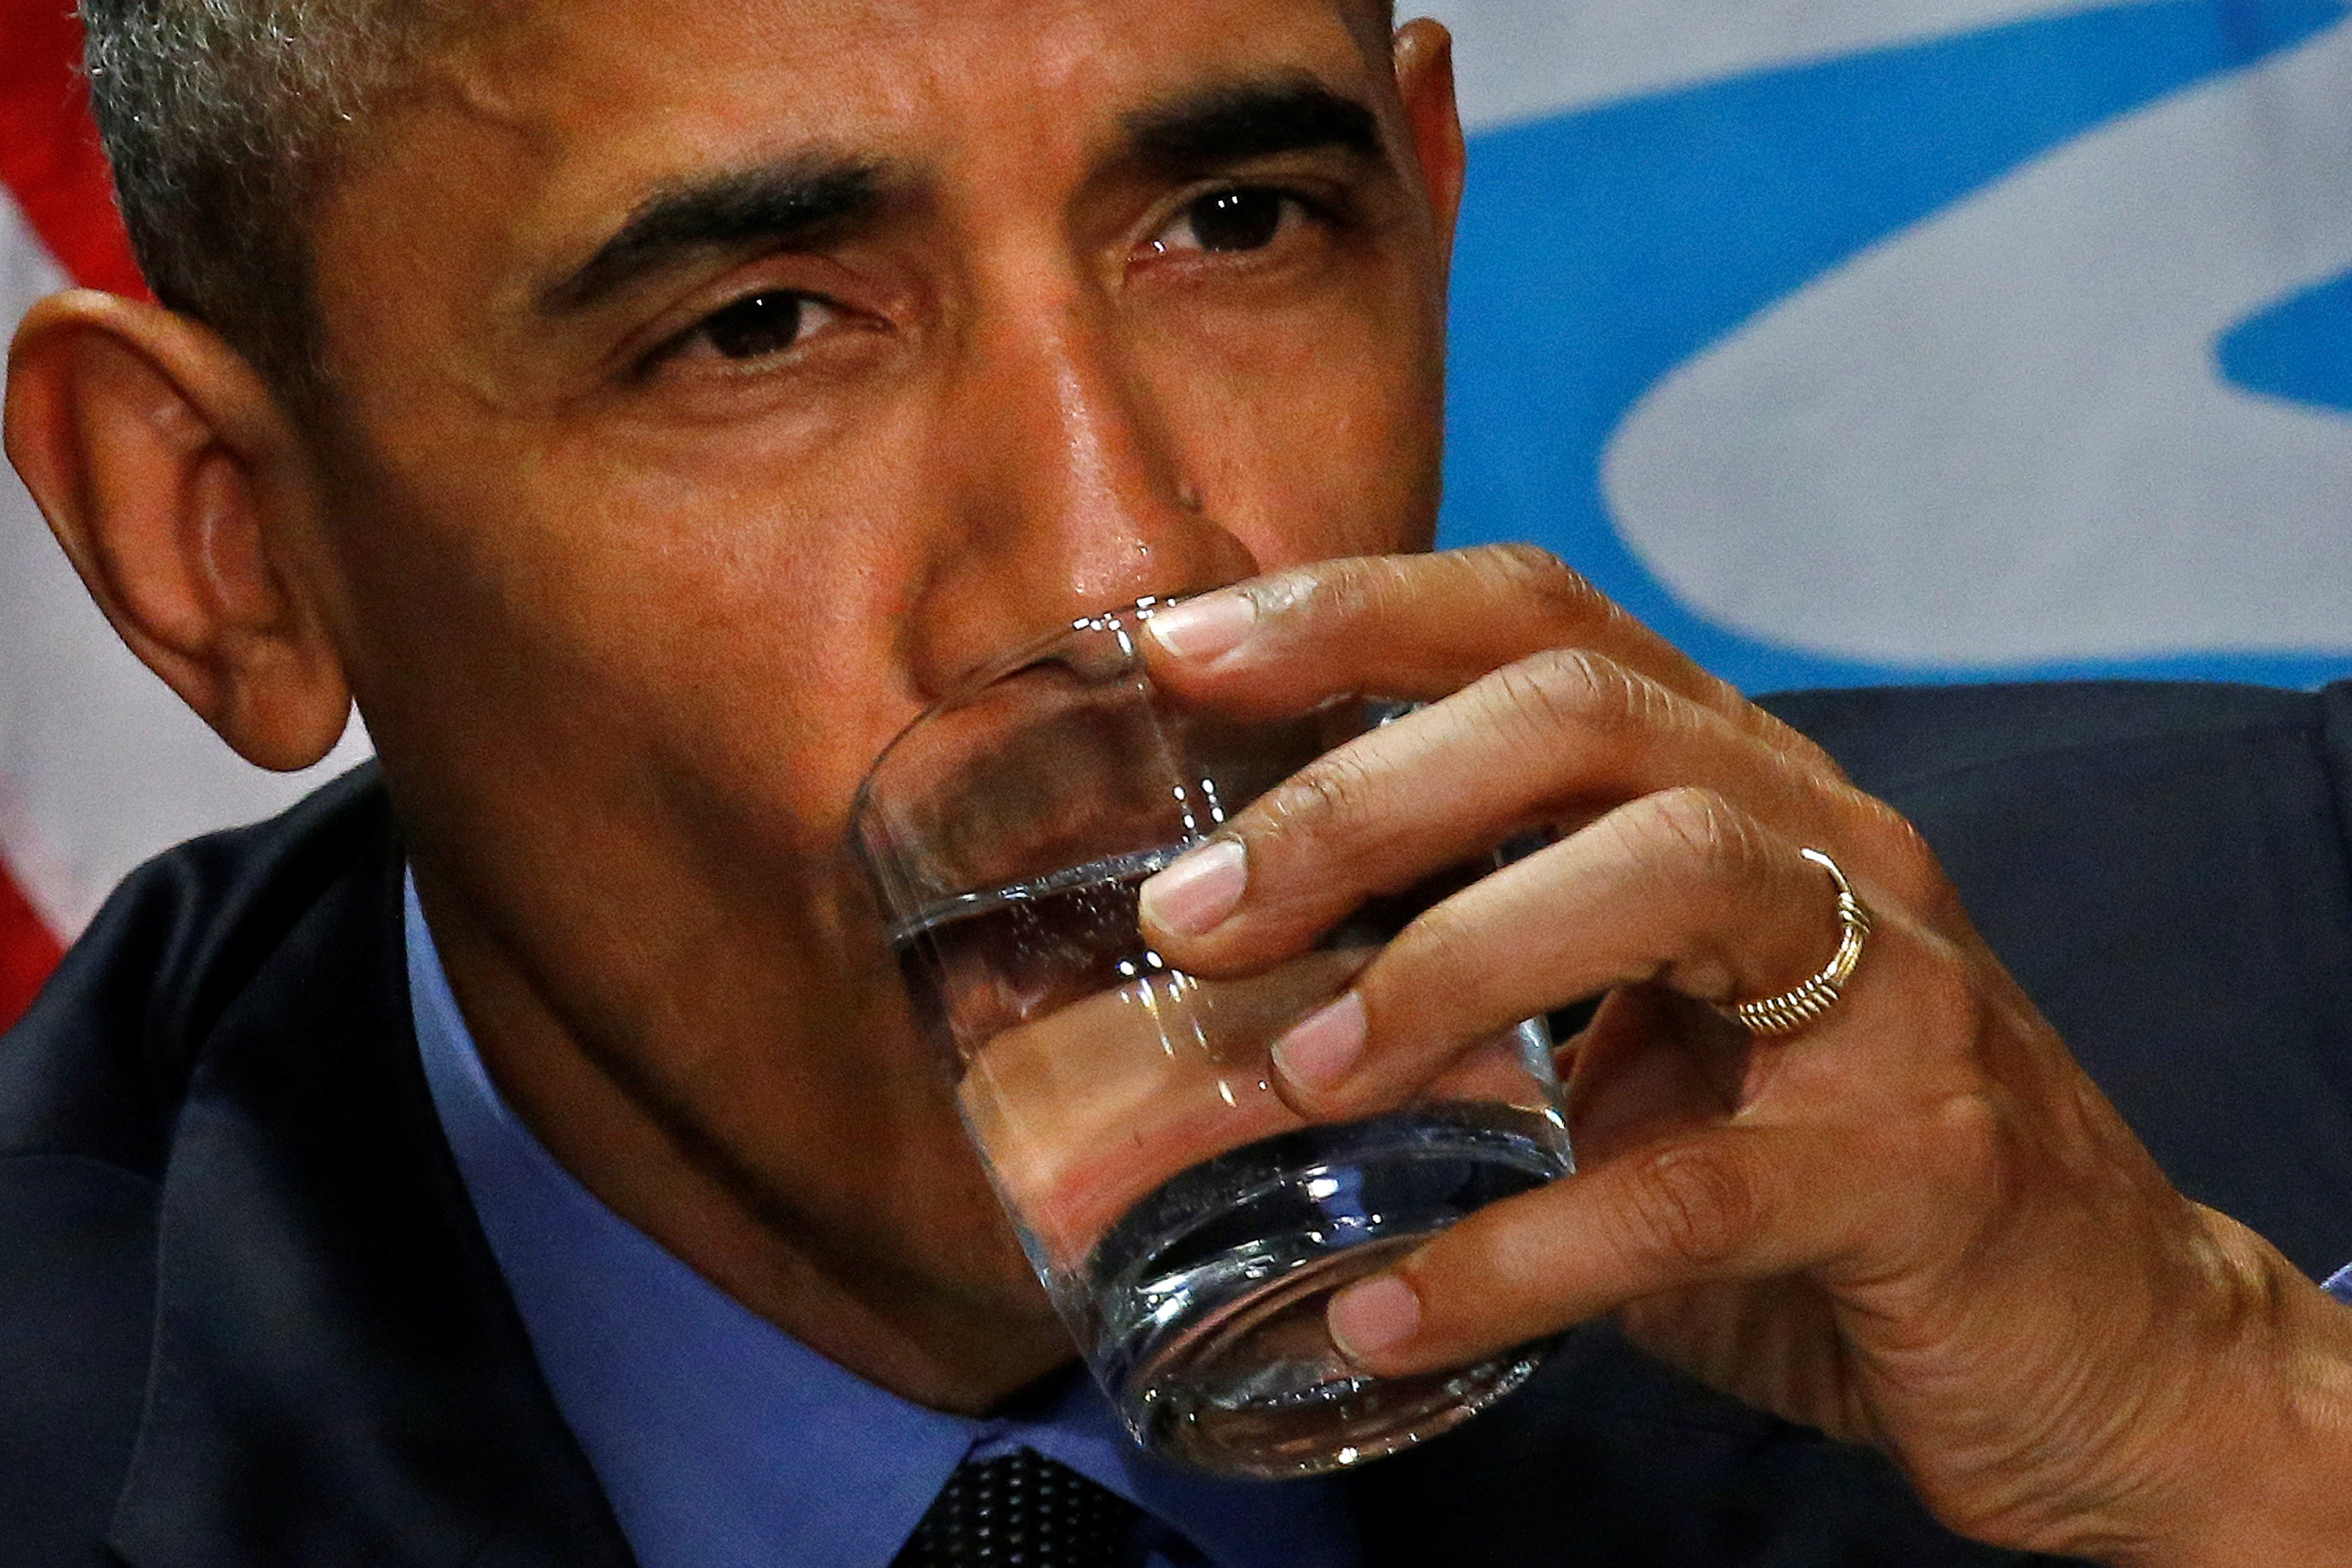 President Obama drinks a glass of filtered water from Flint during a meeting will local and federal authorities in Michigan, on May 4, 2016